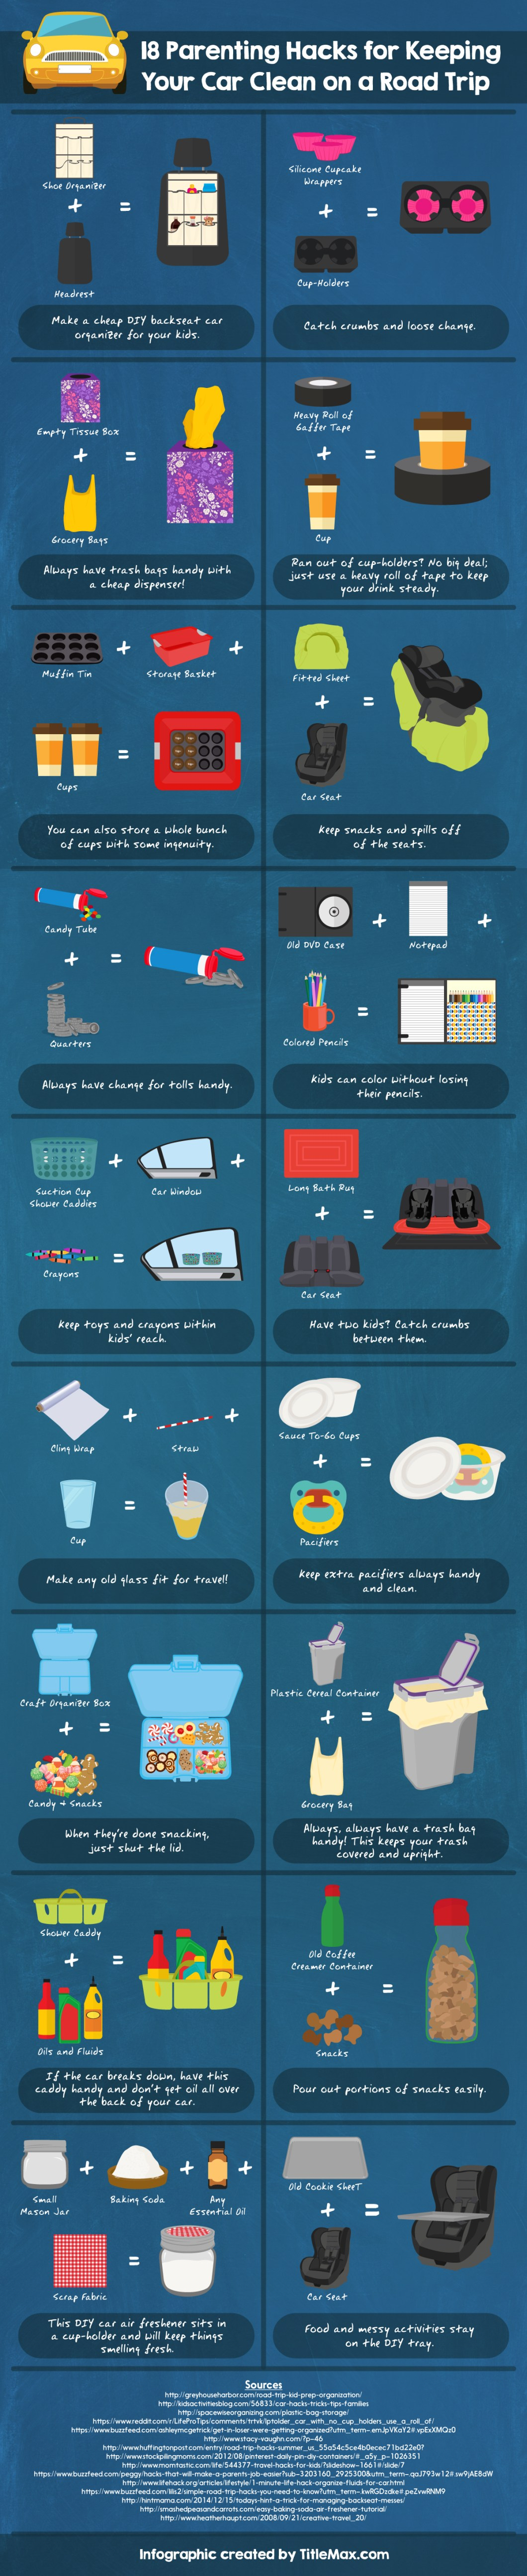 18 Road Trip Hacks For Your Car - Infographic